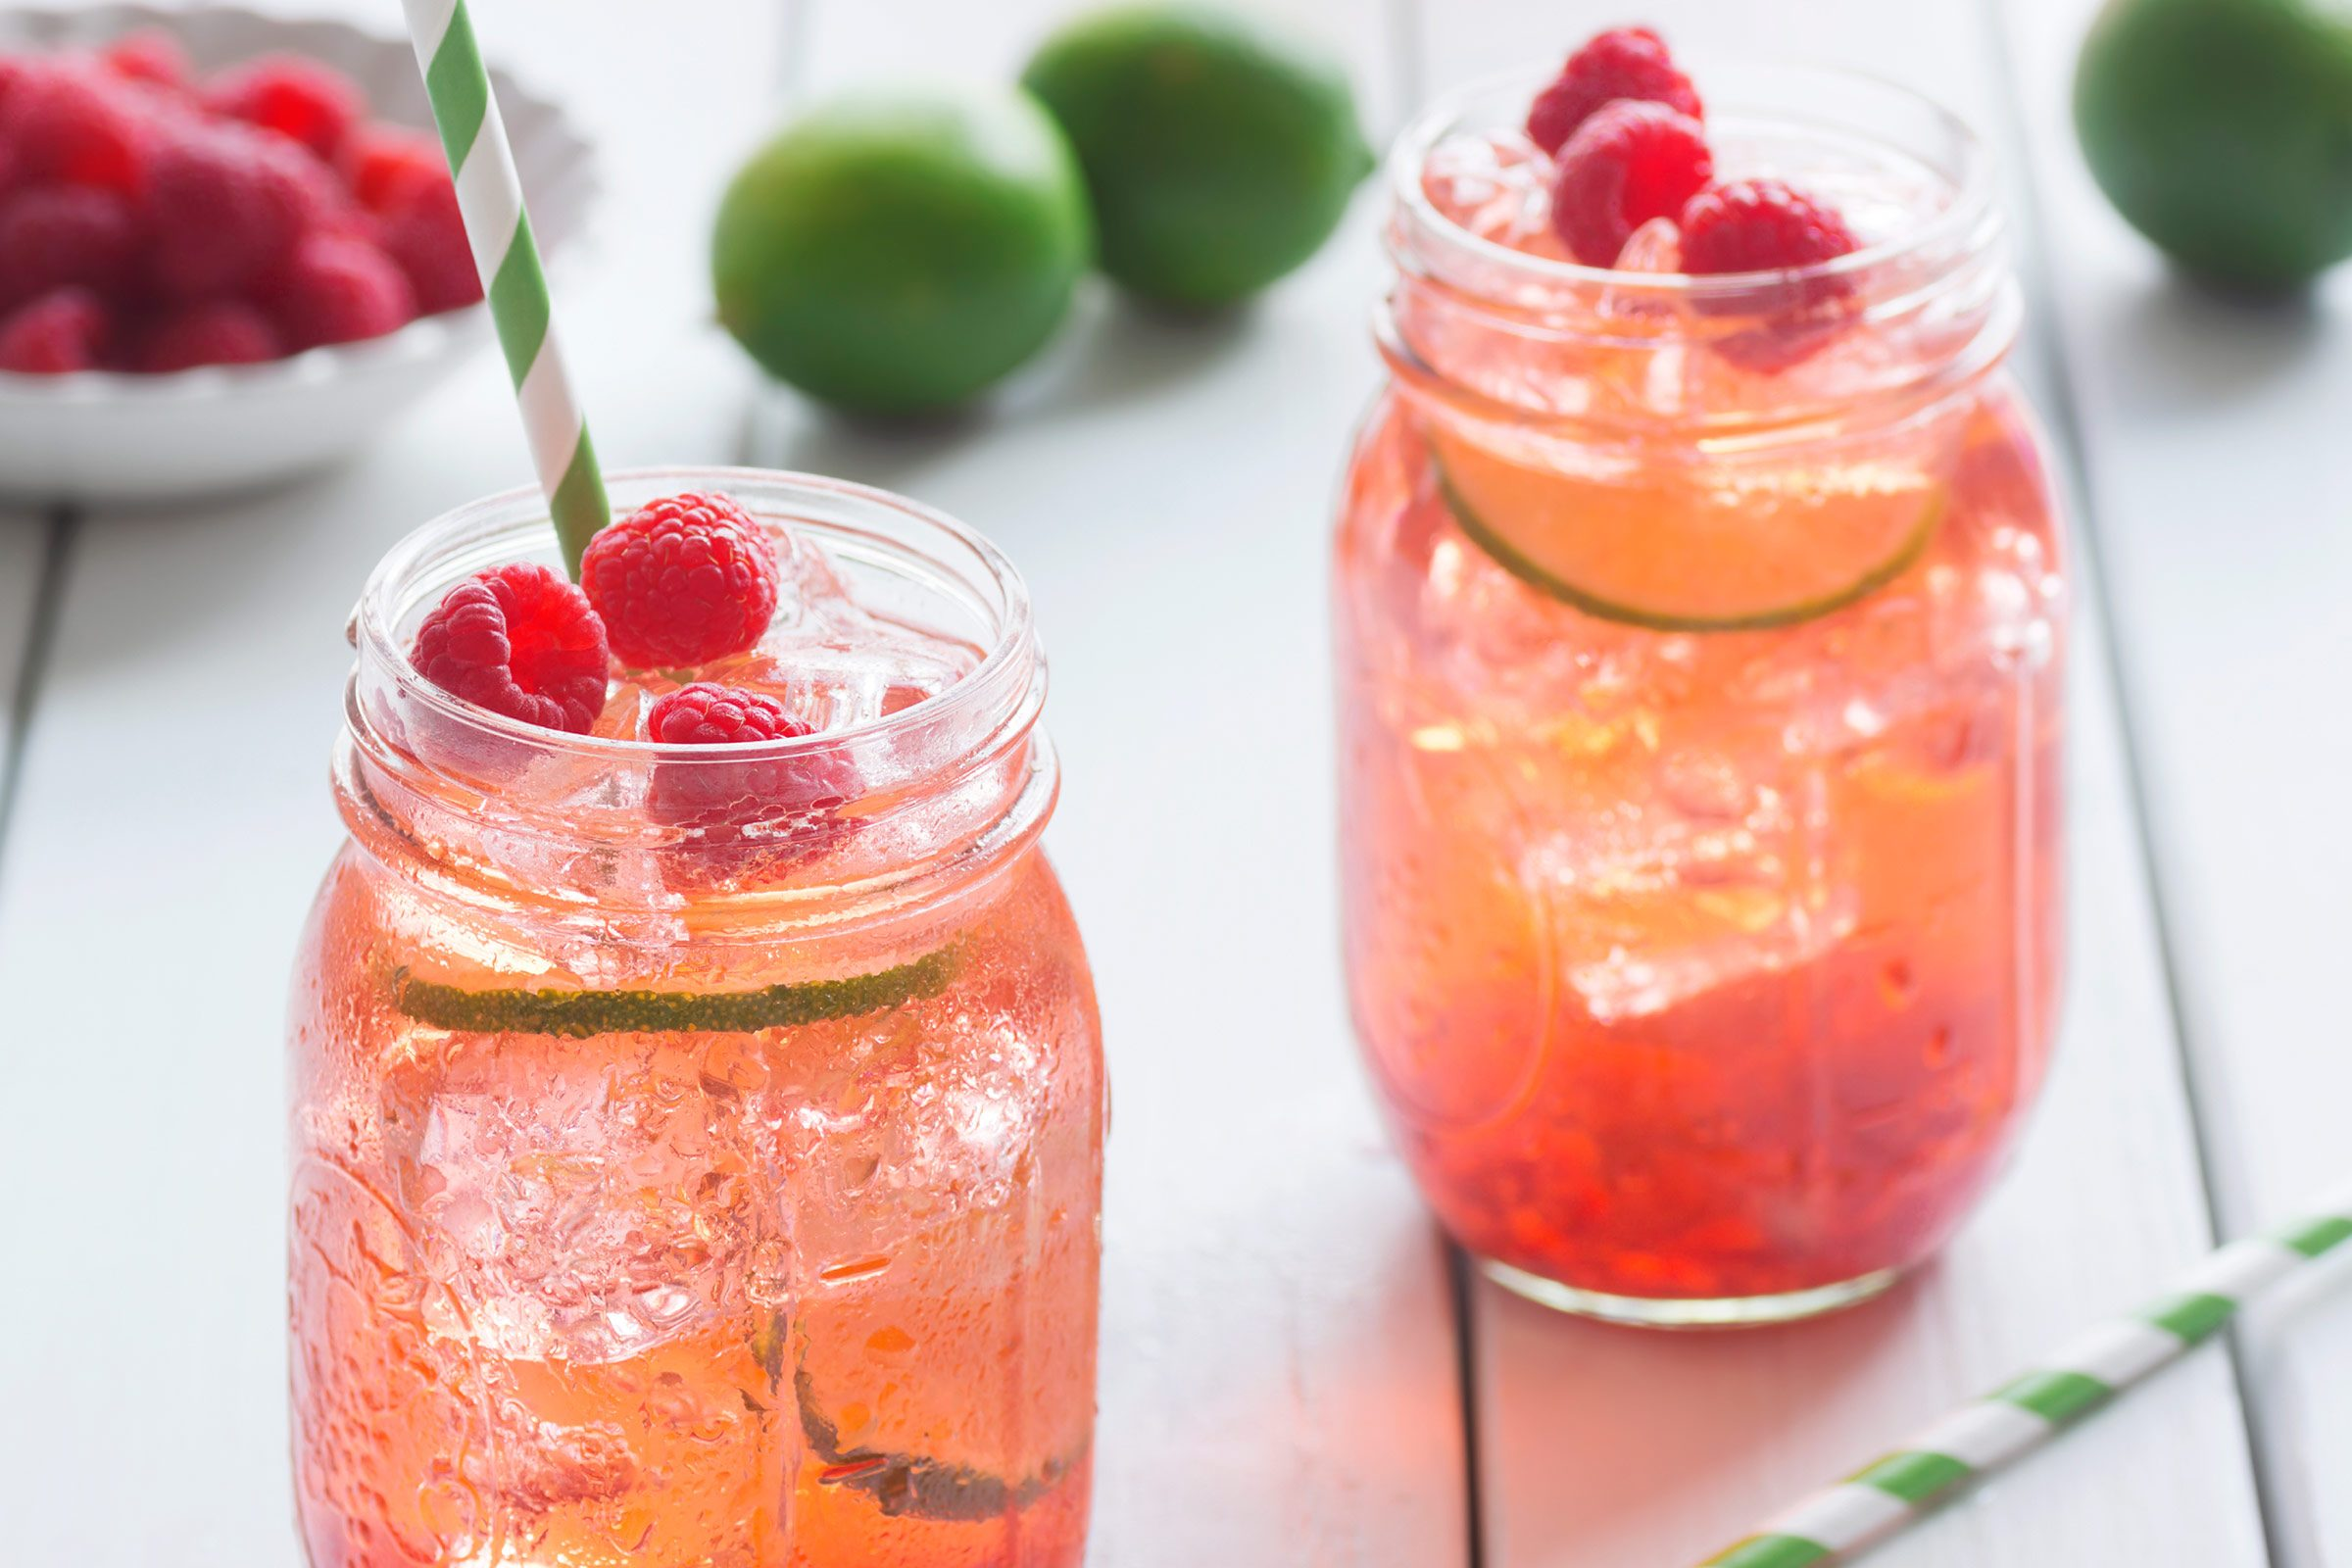 Summer cocktails 8 fun and festive drink recipes reader for Fun alcoholic drink recipes